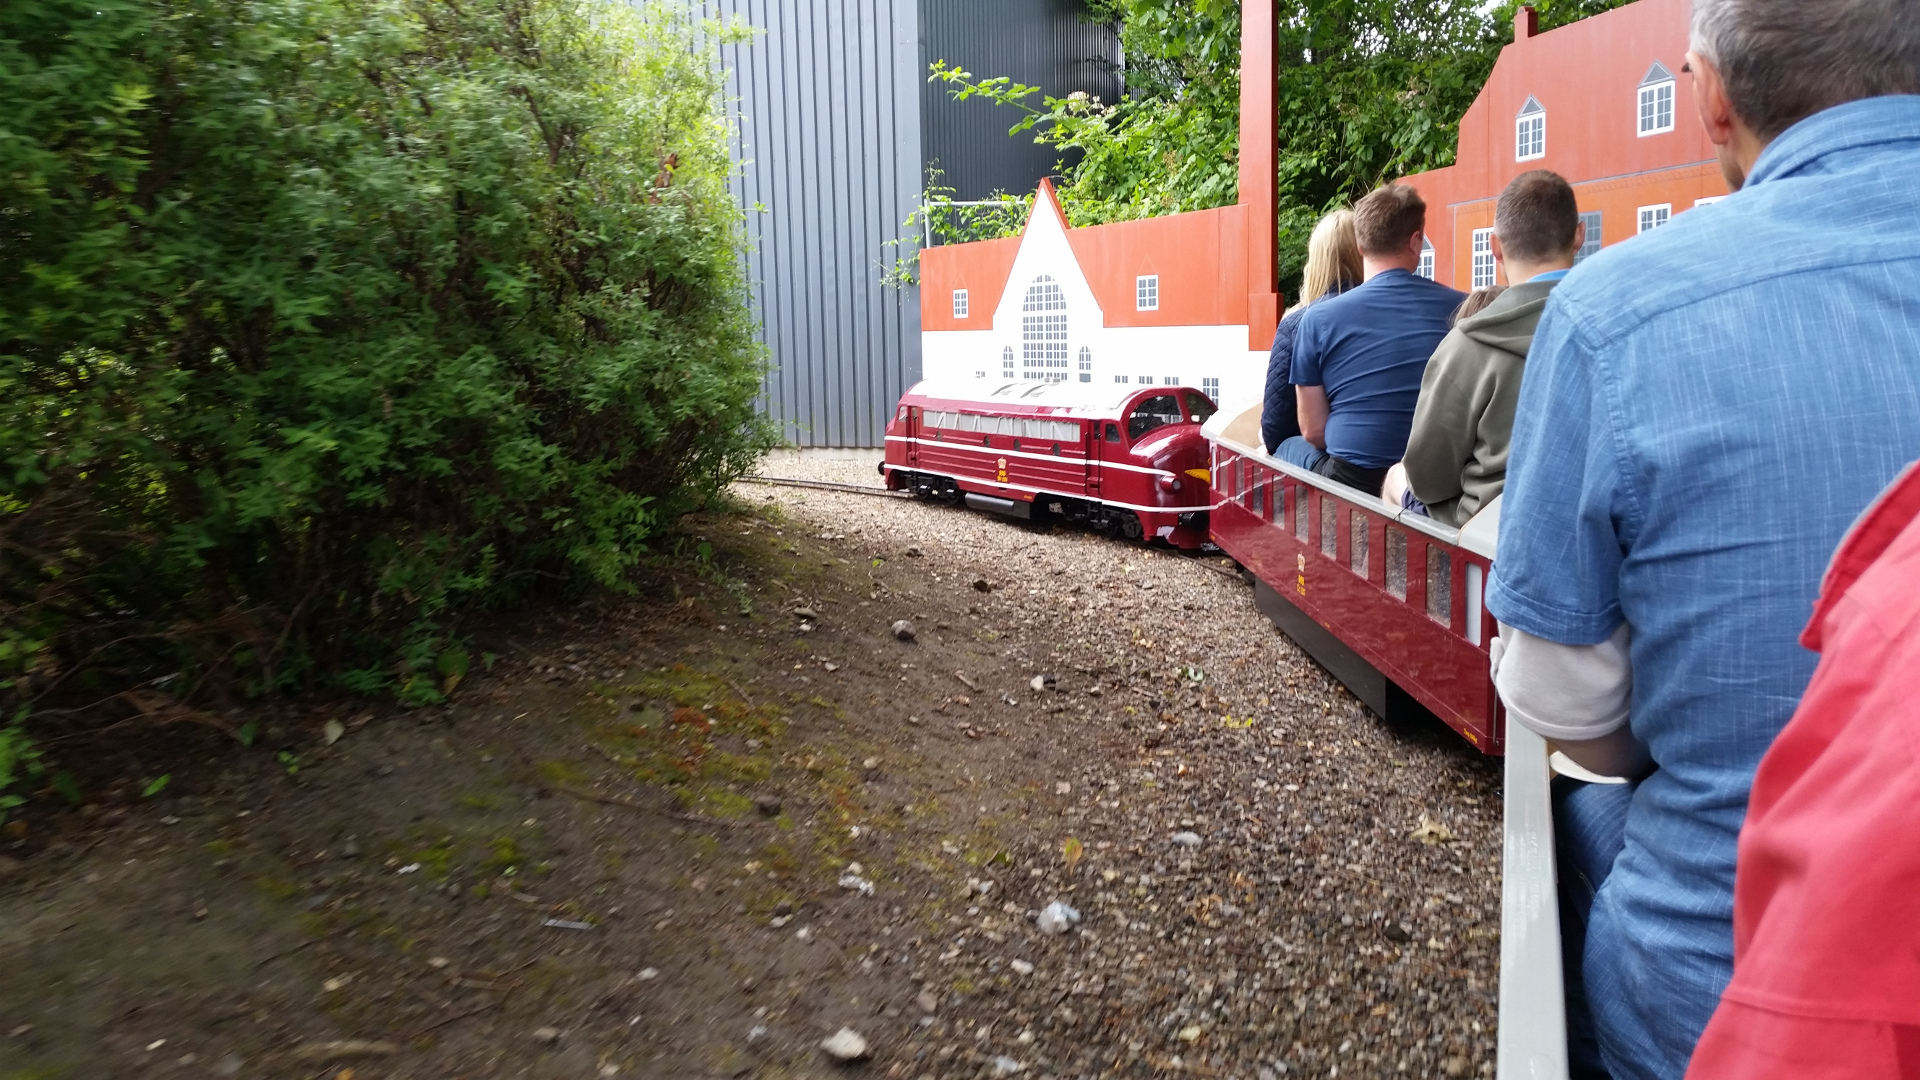 Minitrain around the Odense Denmark Railway museum is popular with kids and adults